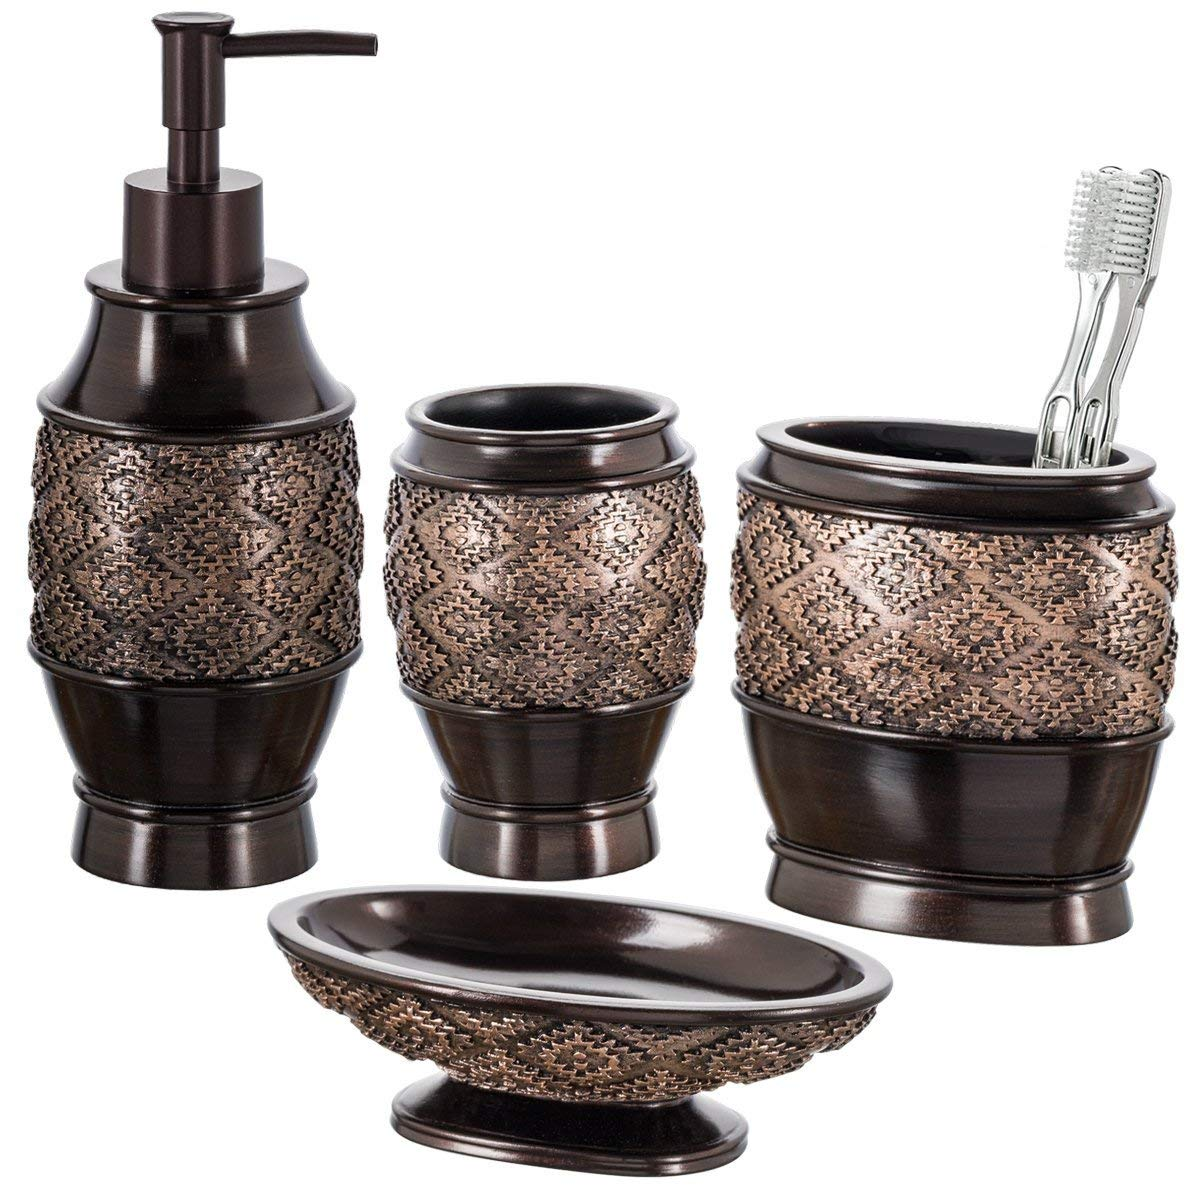 Dublin 6-Piece Bathroom Accessories Set, Includes Decorative Countertop Soap Dispenser, Soap Dish, Tumbler, Toothbrush Holder, Tissue Box Cover and Toilet Bowl Brush (Brown) by Creative Scents (Image #3)